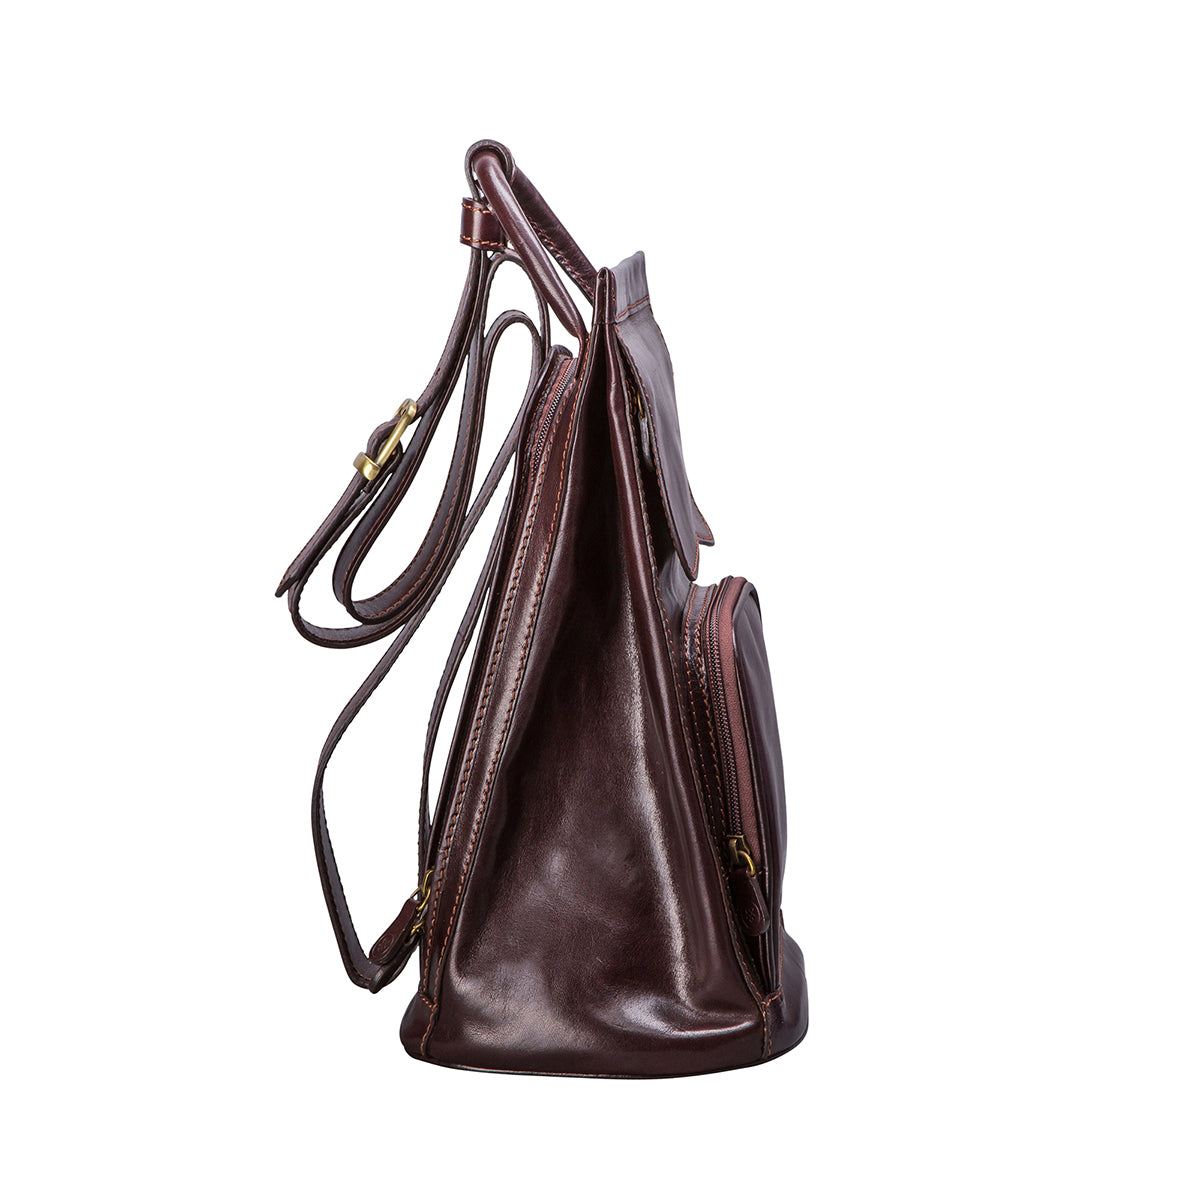 Image 3 of the 'Carli' Dark Chocolate Veg-Tanned Leather Backpack